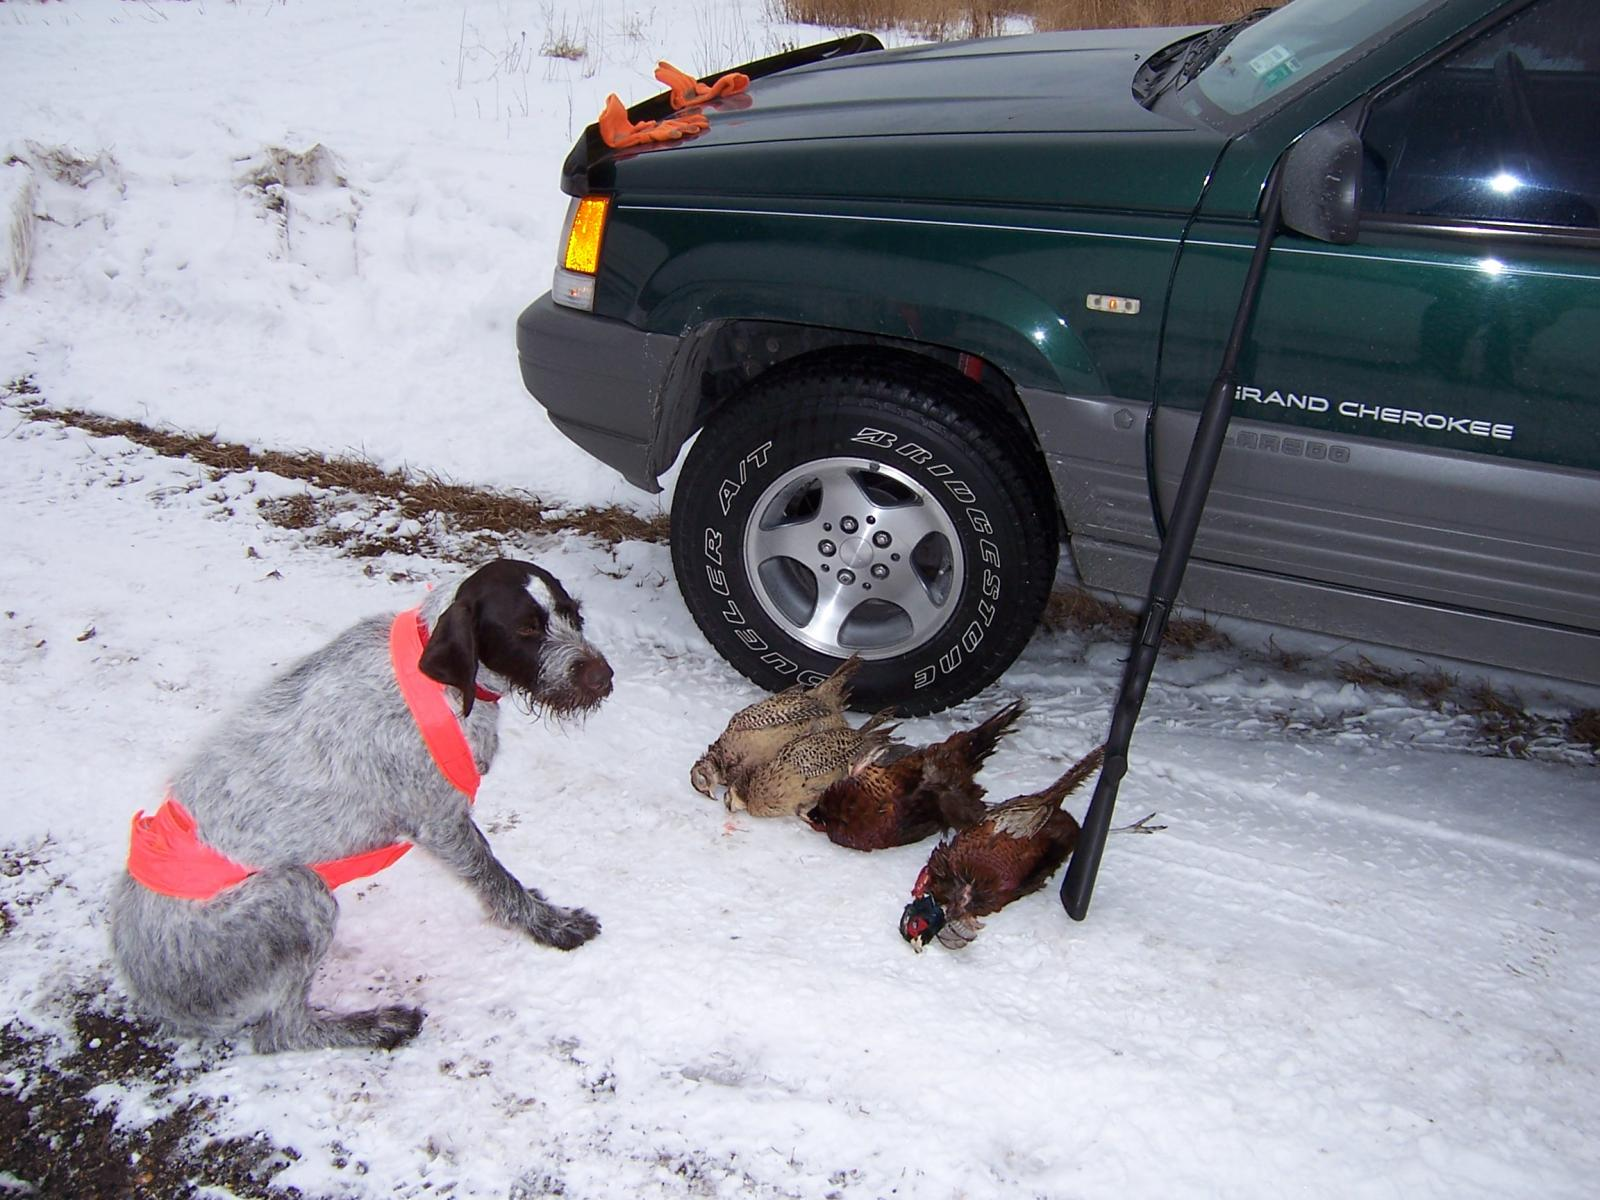 pheasant hunt with zj  and dog (snowwhite, dont ask)